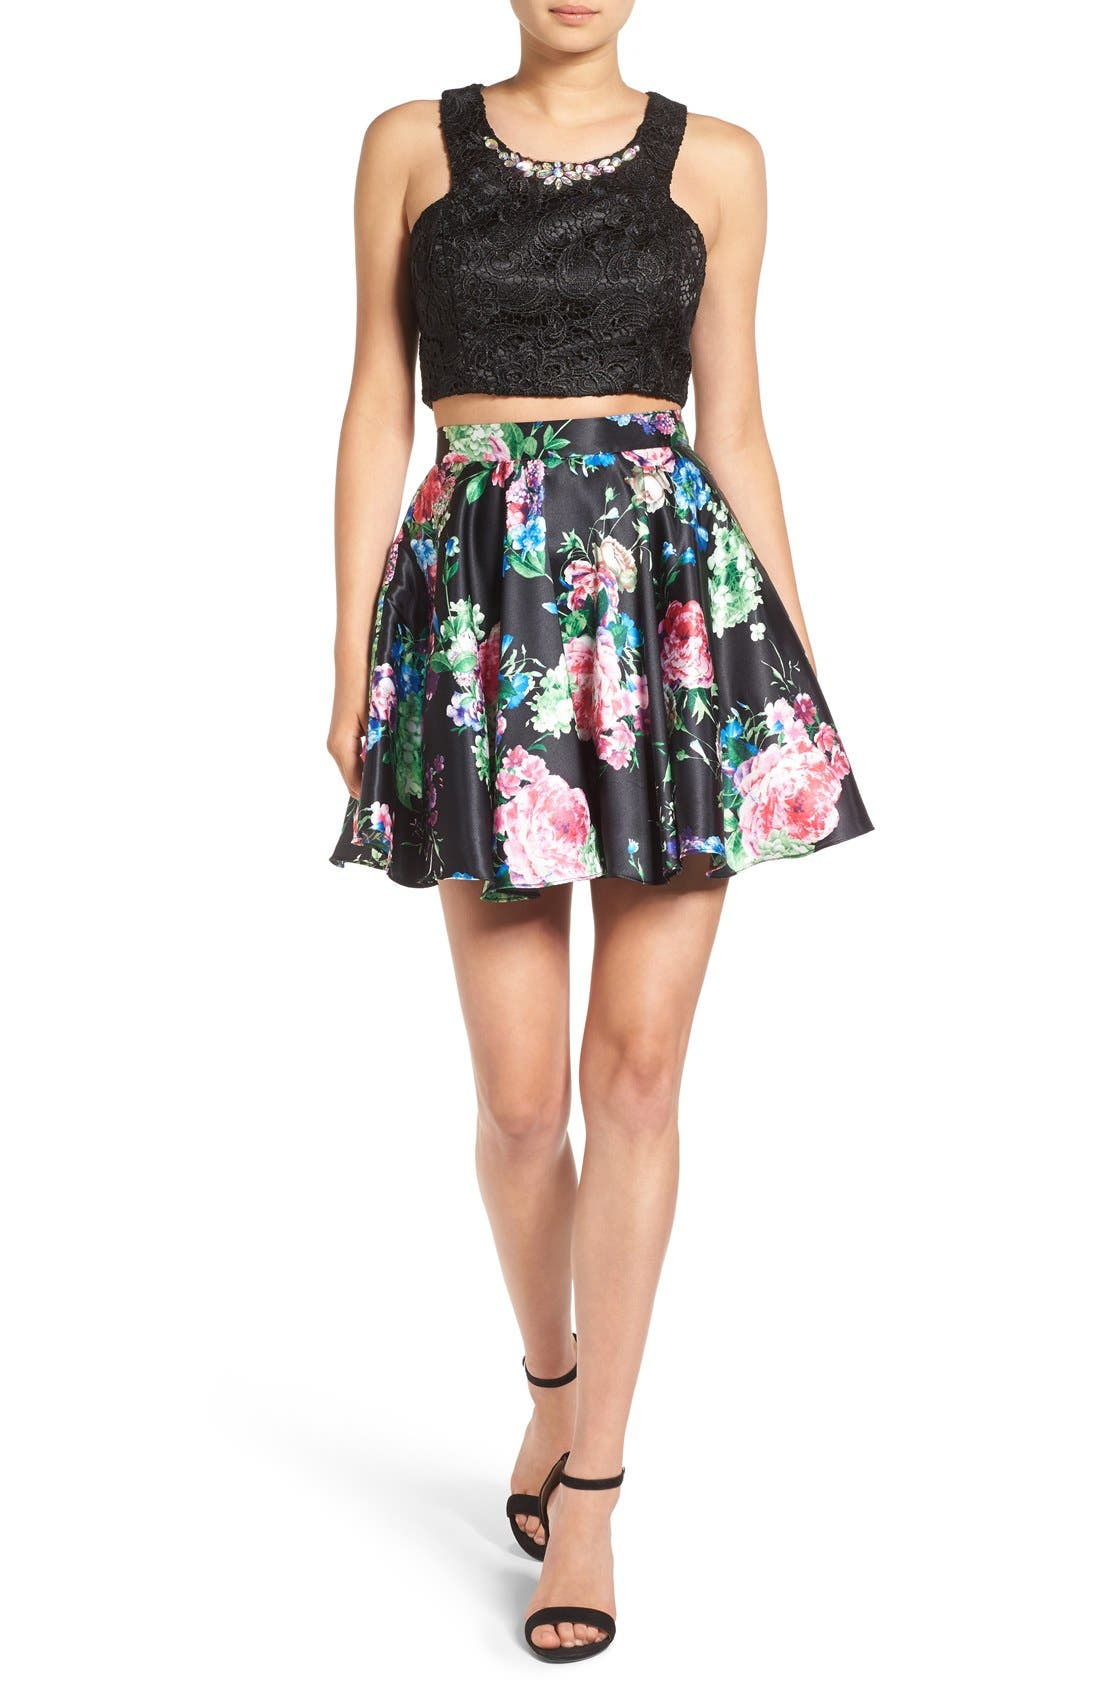 Alternate Image 1 Selected - Steppin Out Lace & Floral Two-Piece Dress